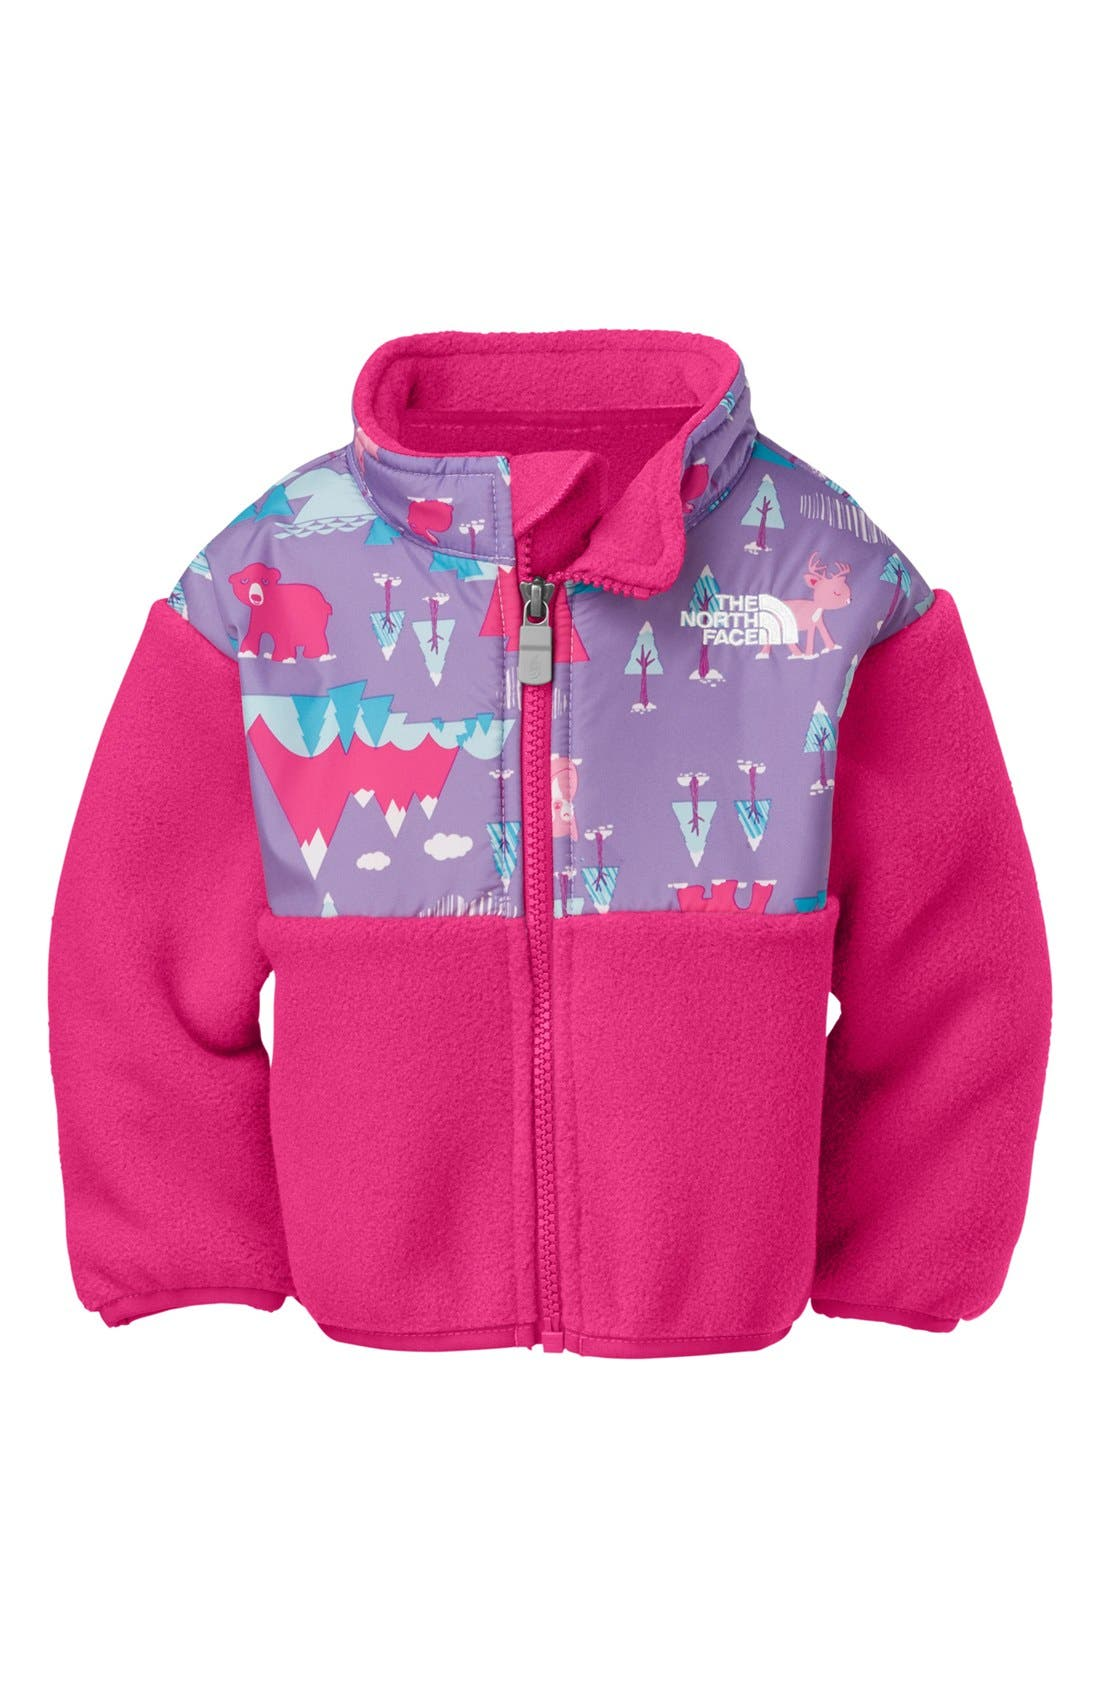 Main Image - The North Face 'Denali' Jacket (Baby Girls)